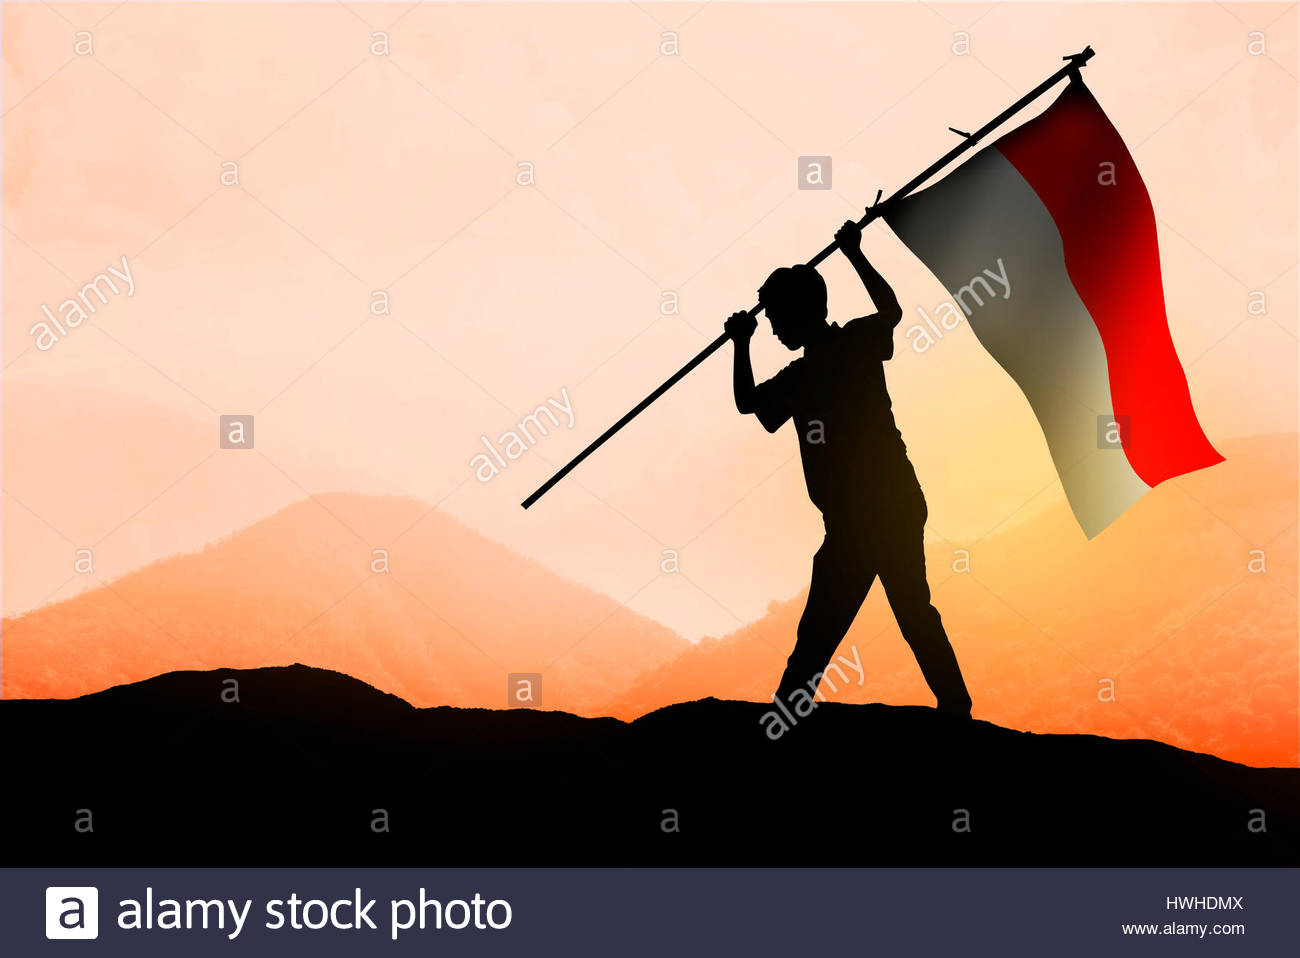 1300x958 Successful Silhouette Man Waving Indonesian Flag On Top